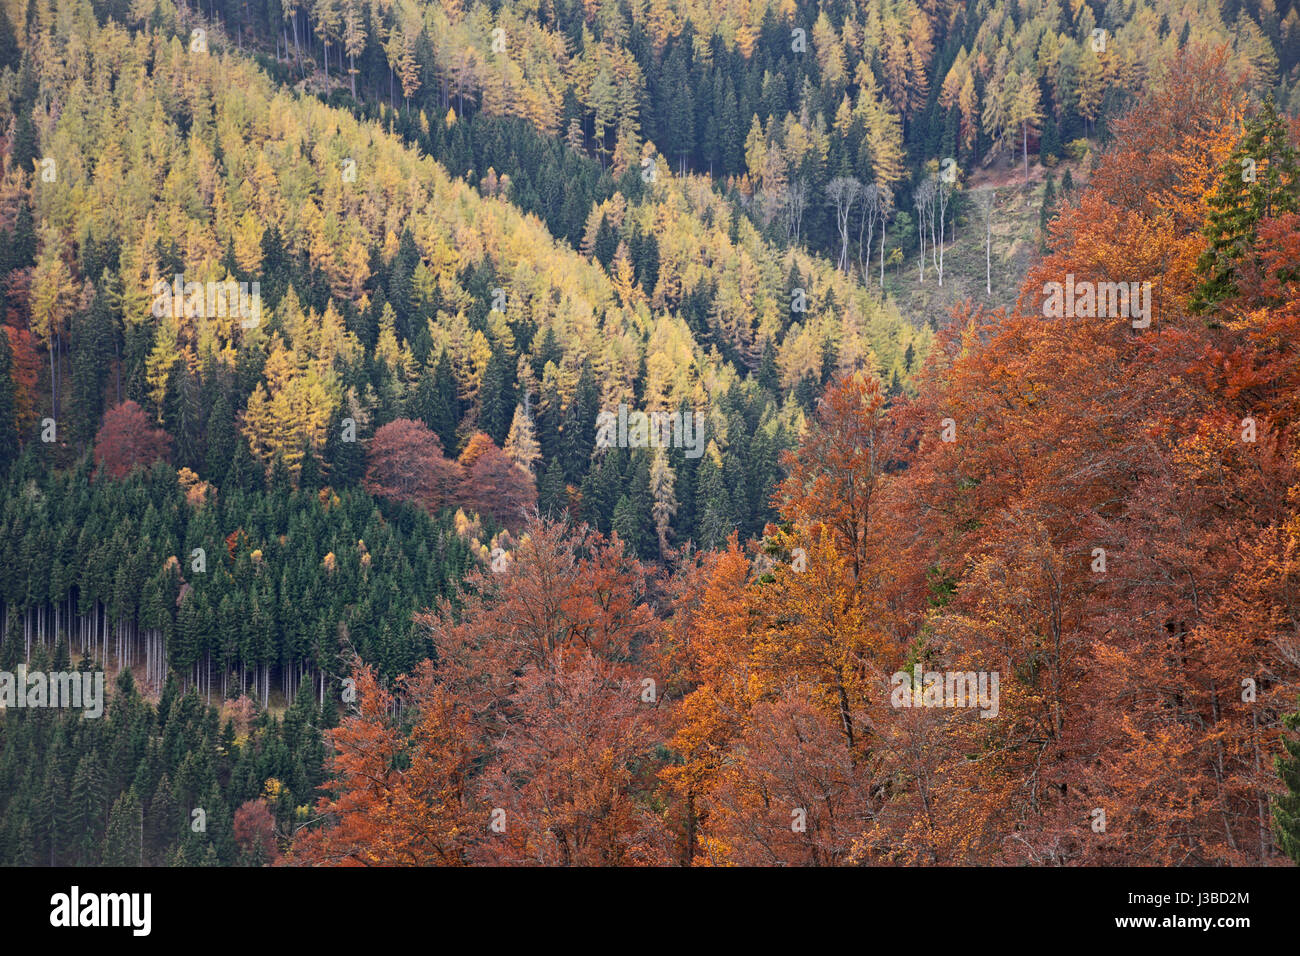 Autumnal forest of beech trees (red), spruces (green) and larches (yellow). Steiermark, Austria. - Stock Image